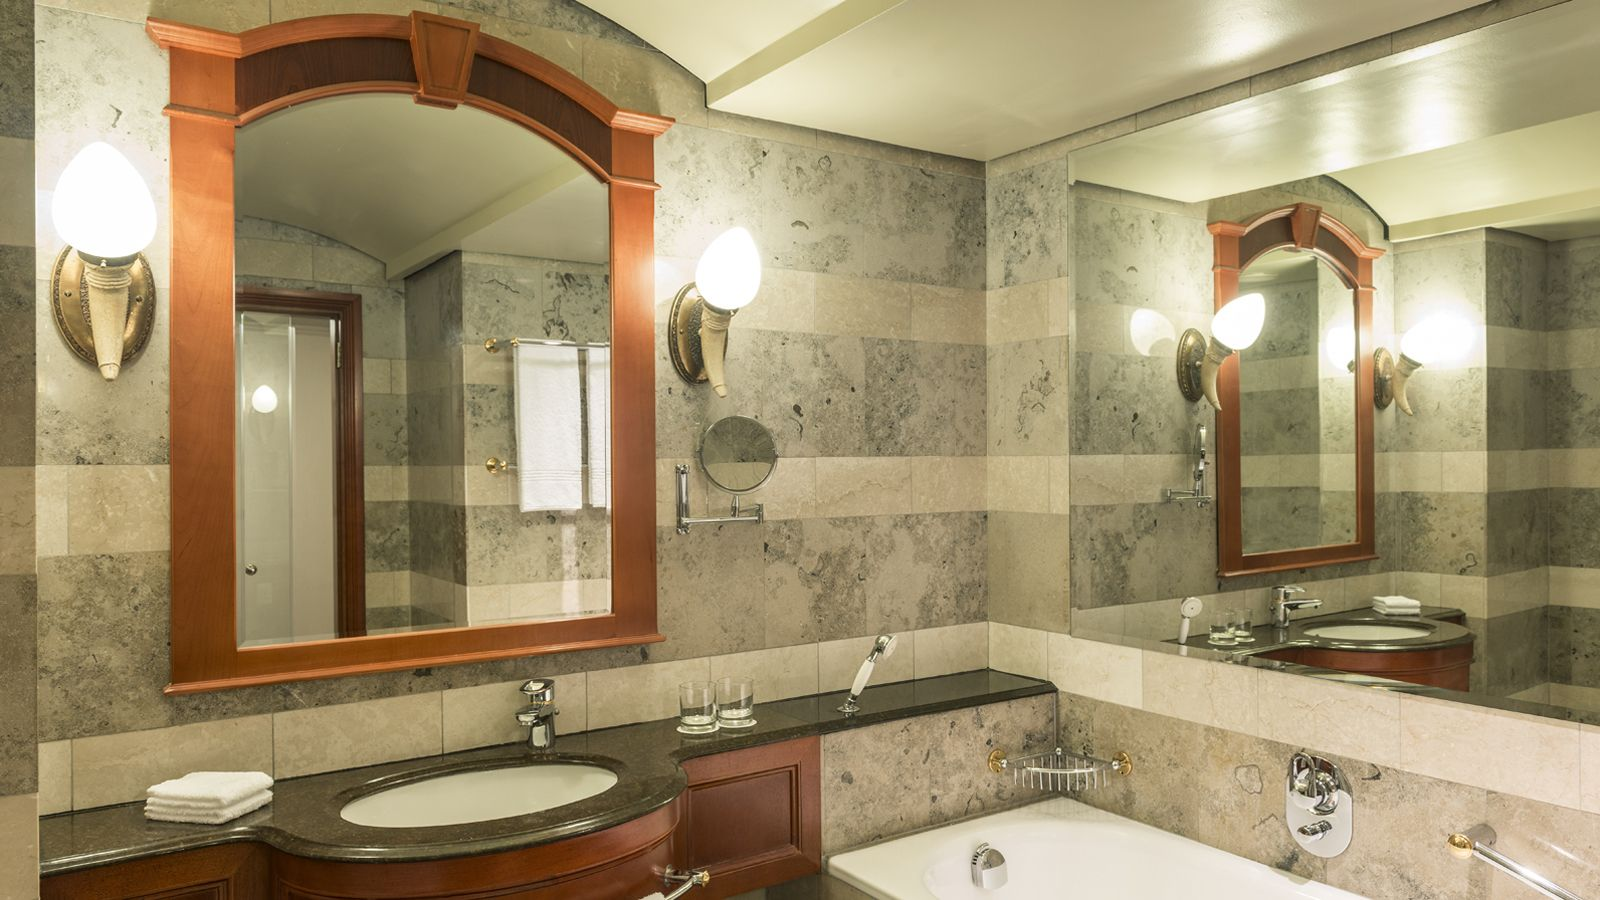 Deluxe Room Bathroom interior